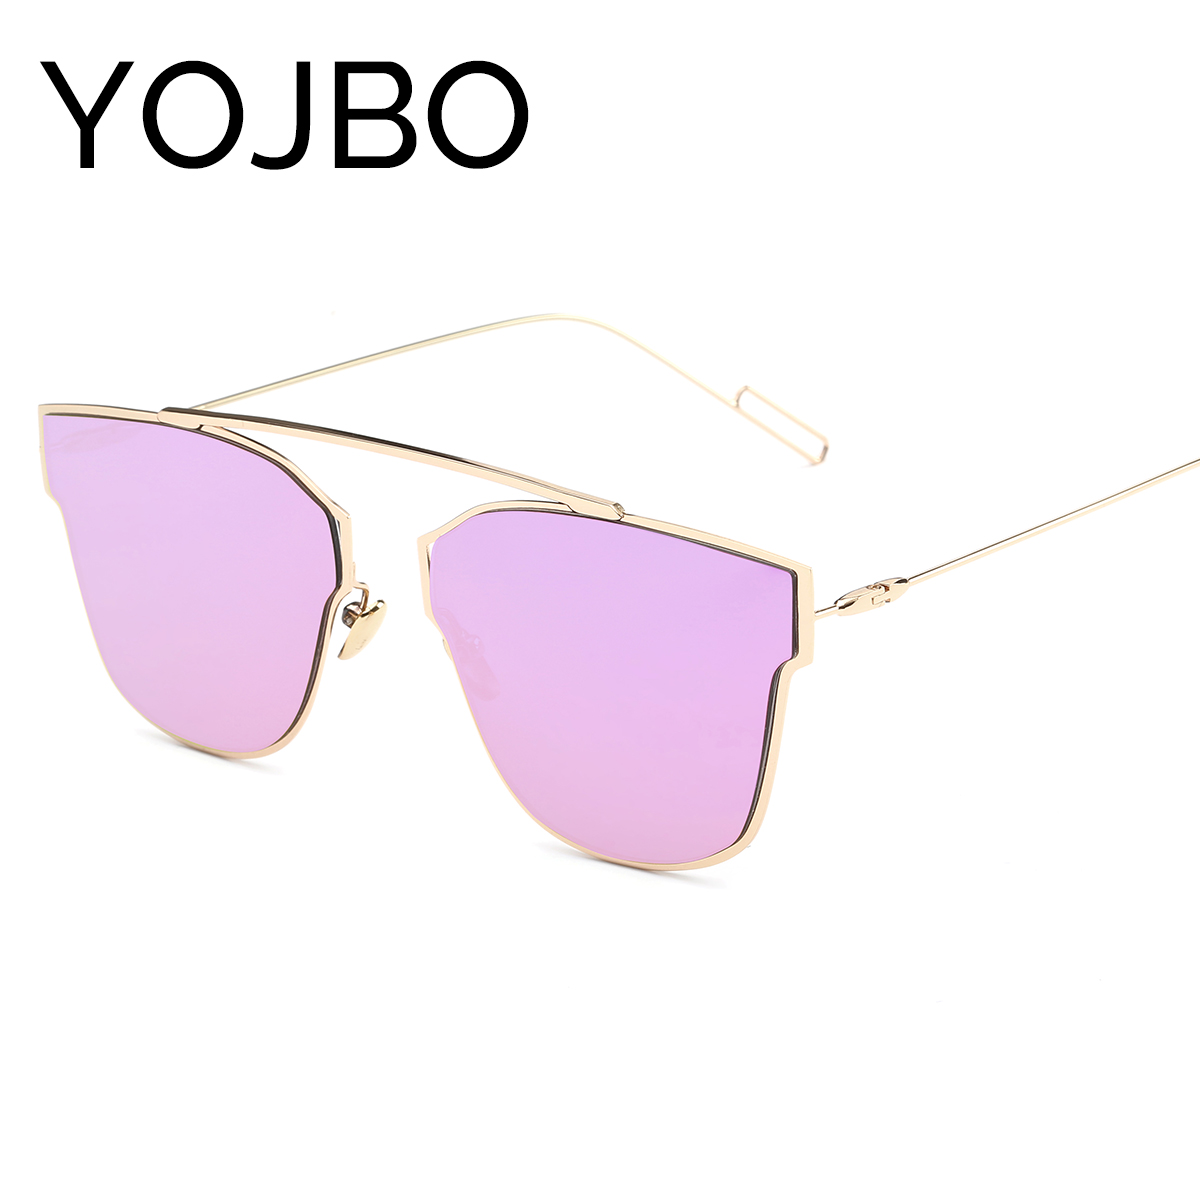 YOJBO Mirror Sunglasses Women Brand Designer font b Polarized b font 2017 font b Fashion b